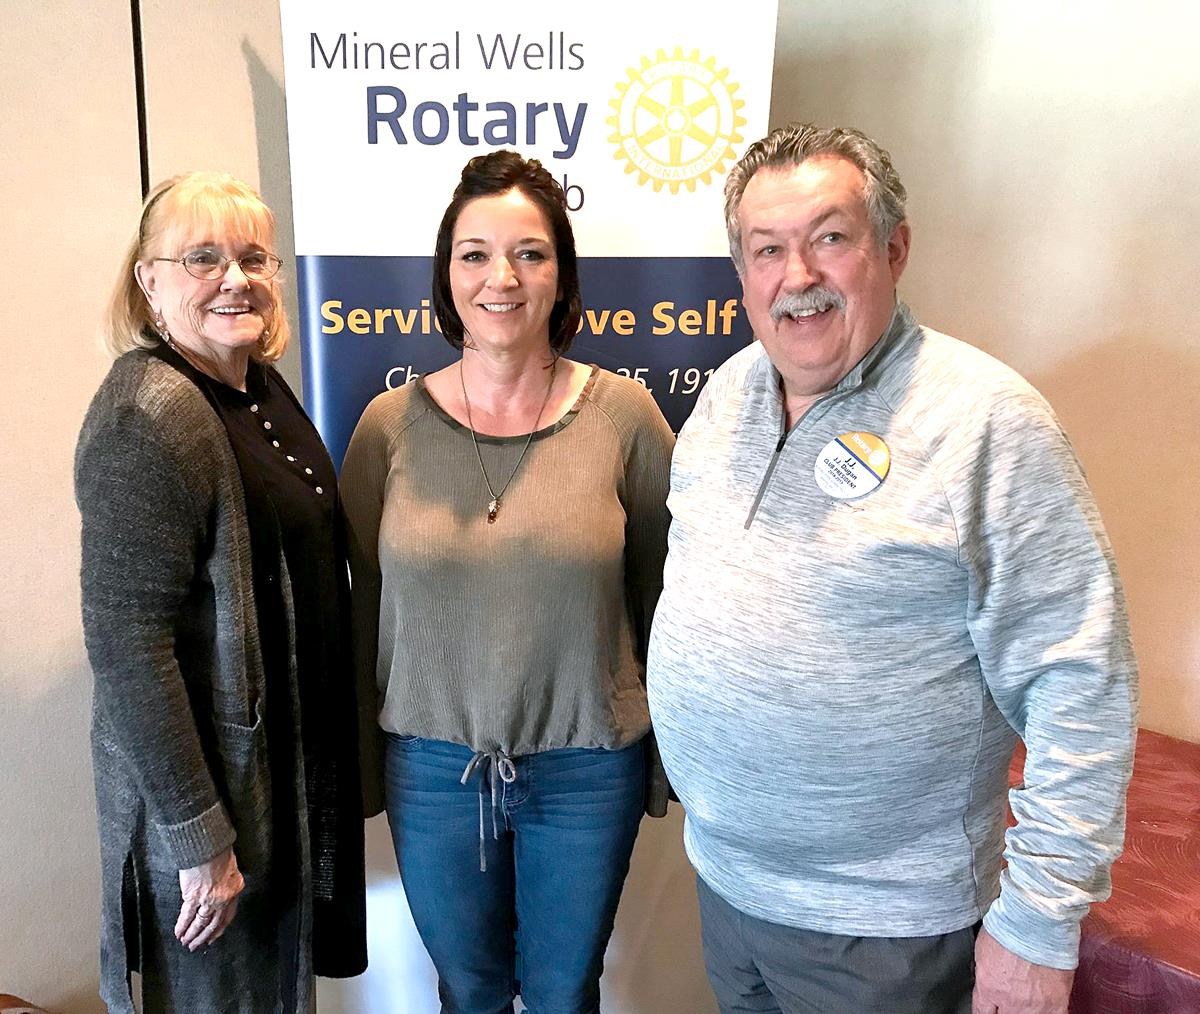 Dorothy Clark, left, and Amy O'Bannon, center, are pictured with Rotary Cub of Mineral Wells President JJ Dugan. Clark and O'Bannon gave a presentation on the benefits of their lines of Texas-legalCBD products.